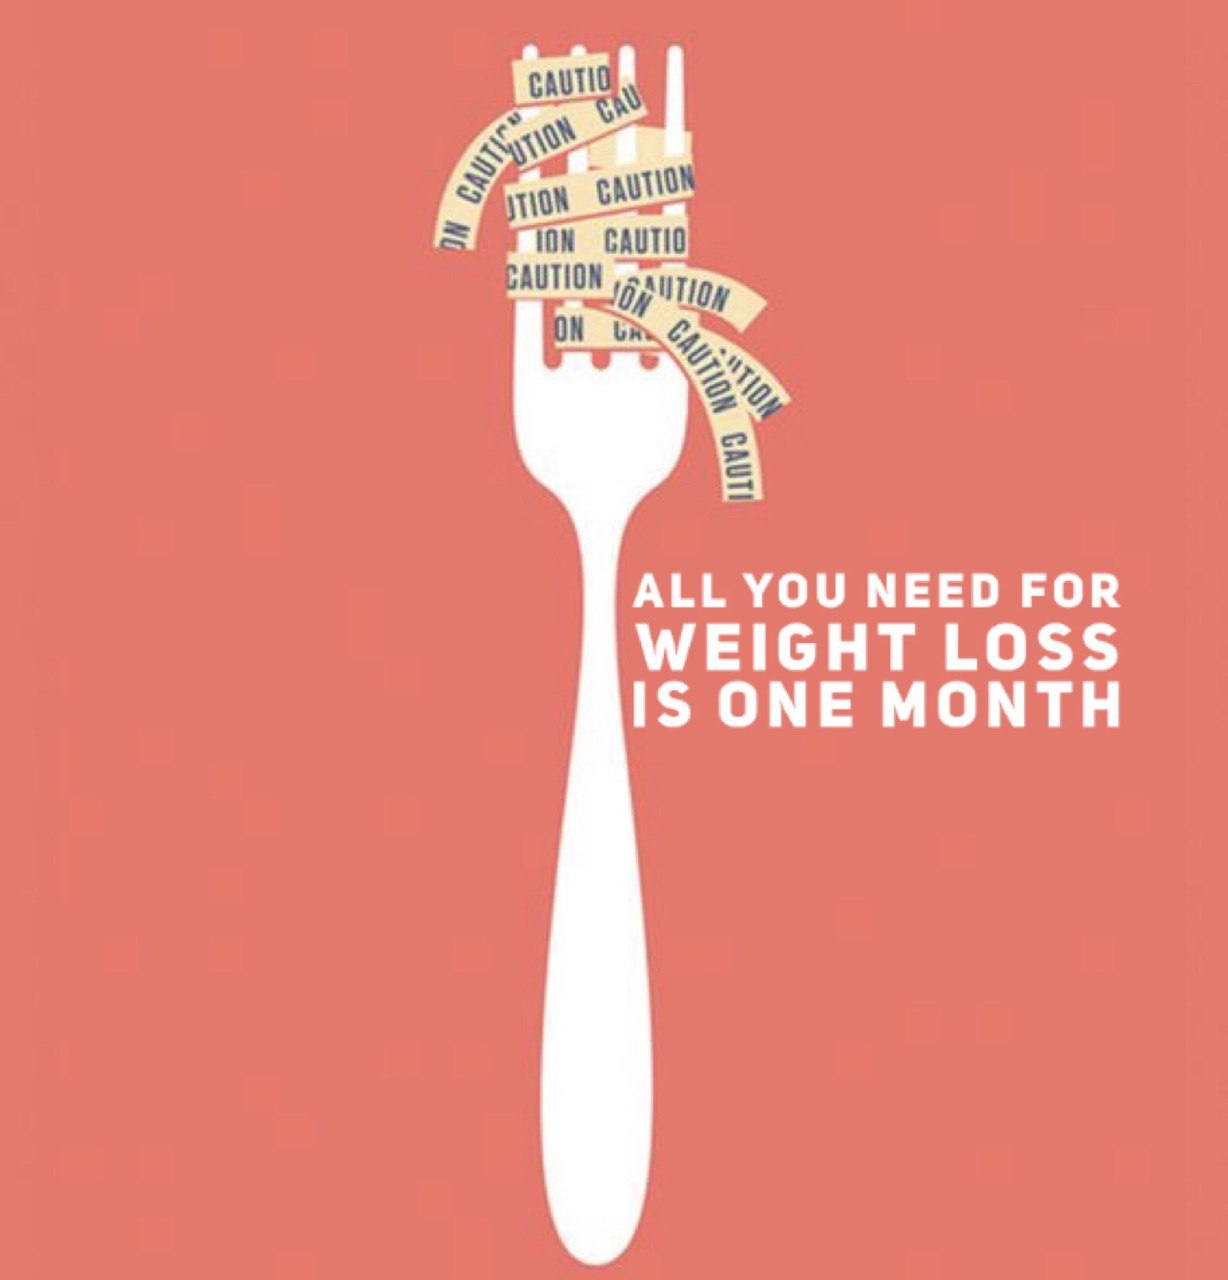 All you need for weight loss is one month